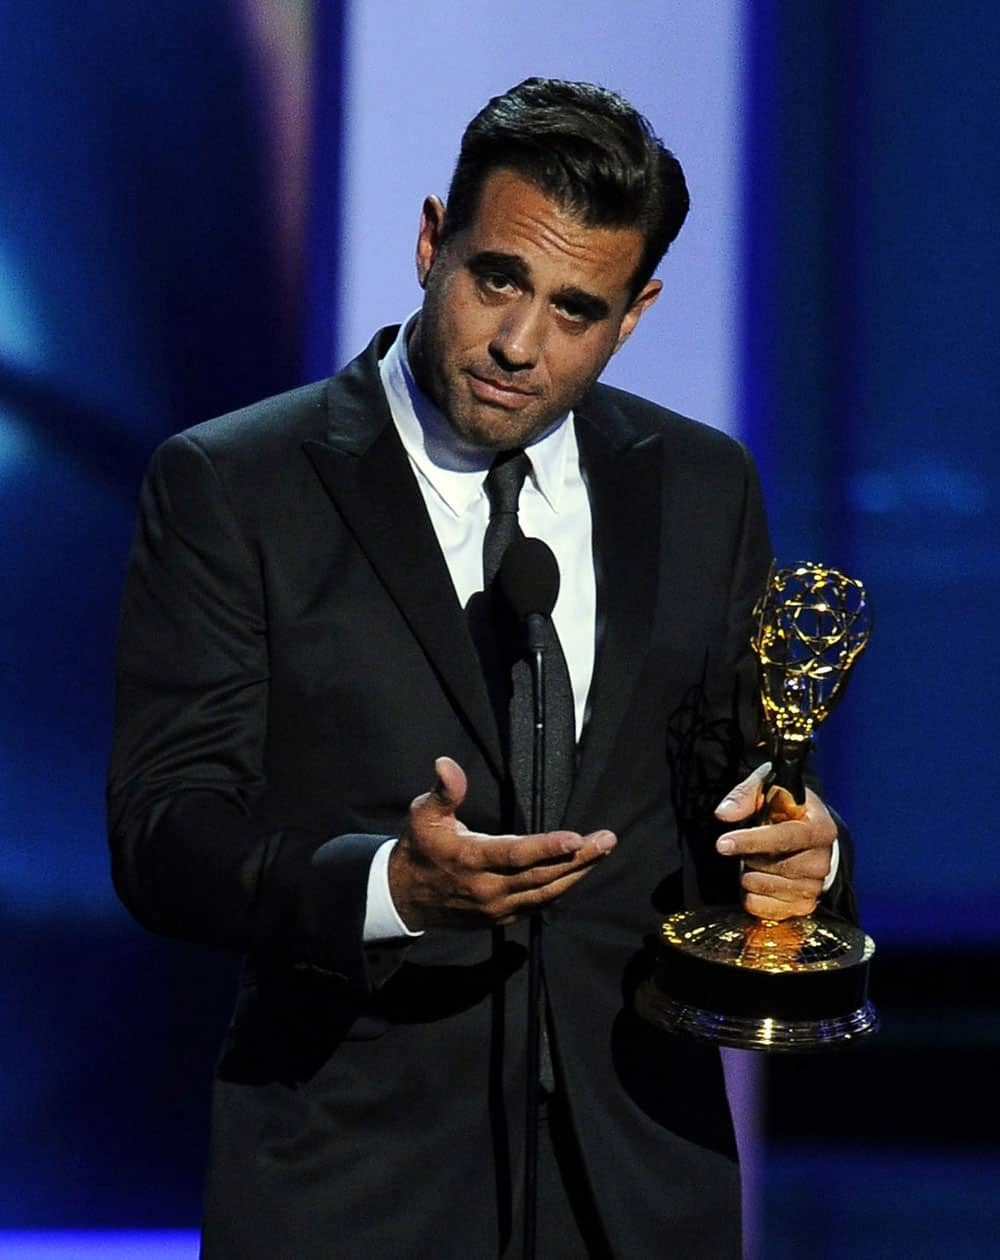 """Bobby Cannavale accepts the award for outstanding supporting actor in a drama series for his role on """"Boardwalk Empire"""" at the 65th Primetime Emmy Awards at Nokia Theatre."""